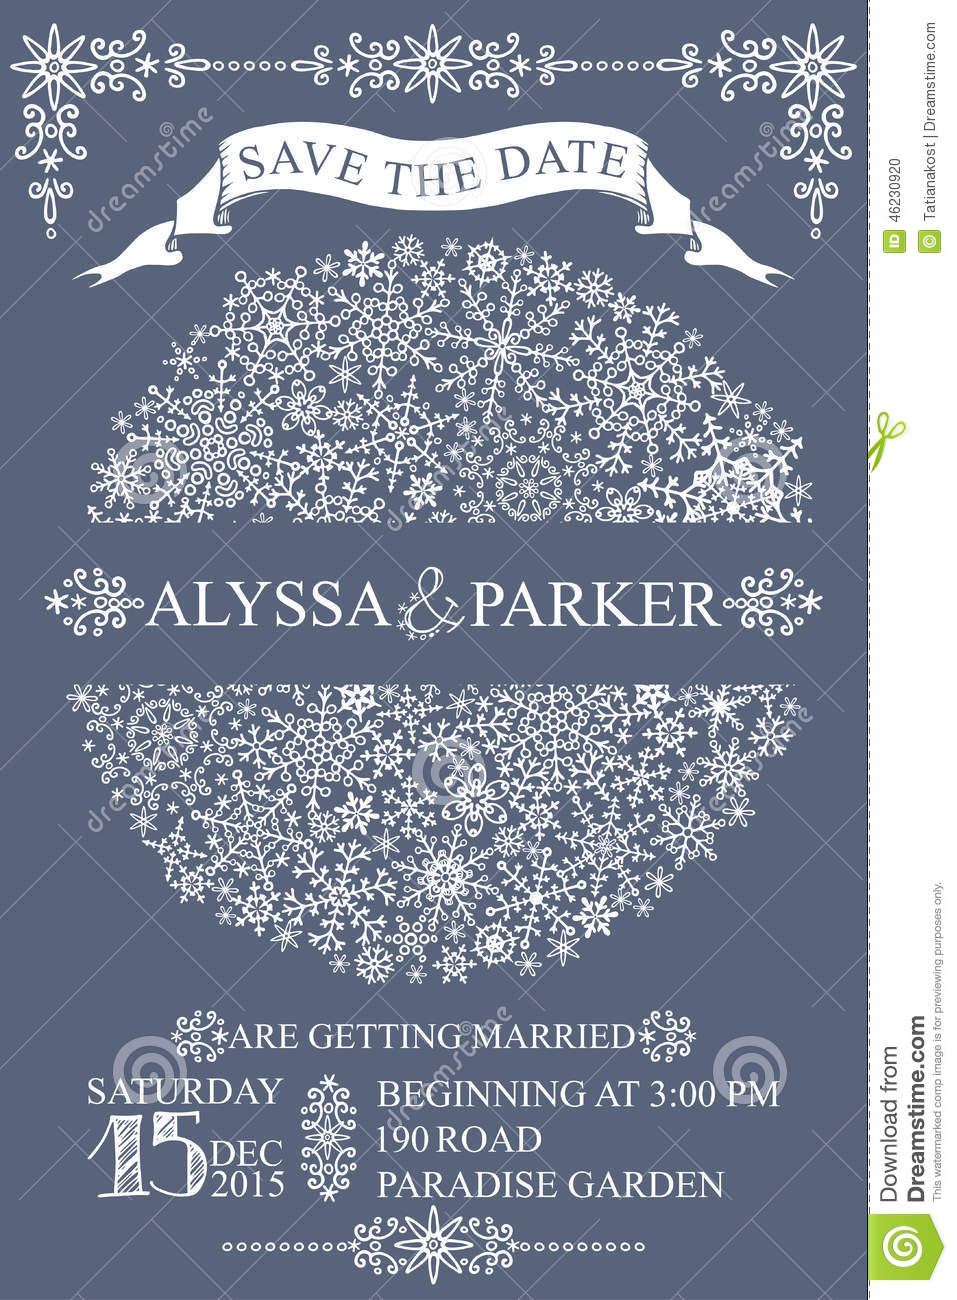 Winter Wedding Save Date CardSnowflakes Circle Photo – Winter Wedding Save the Dates